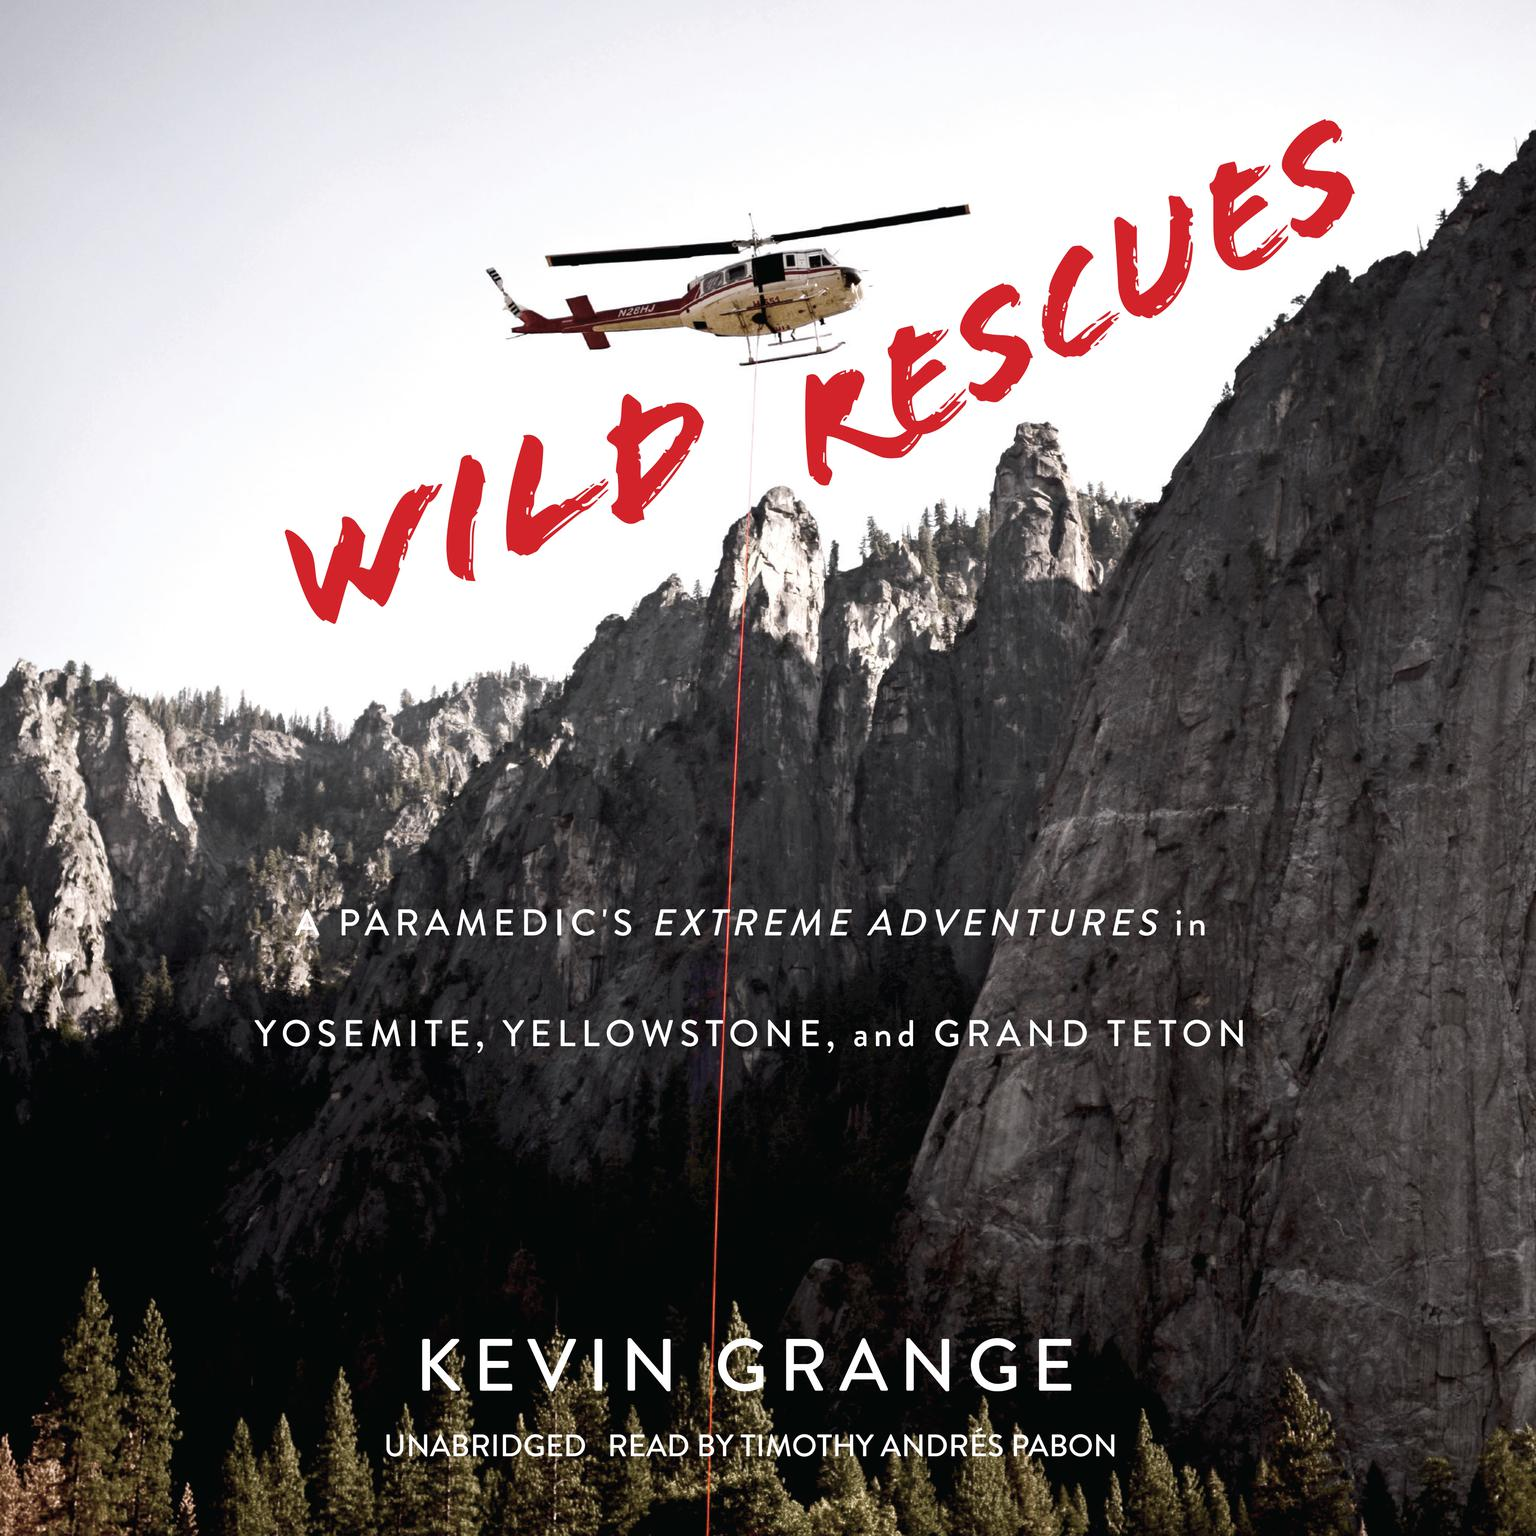 Wild Rescues: A Paramedic's Extreme Adventures in Yosemite, Yellowstone, and Grand Teton Audiobook, by Kevin Grange